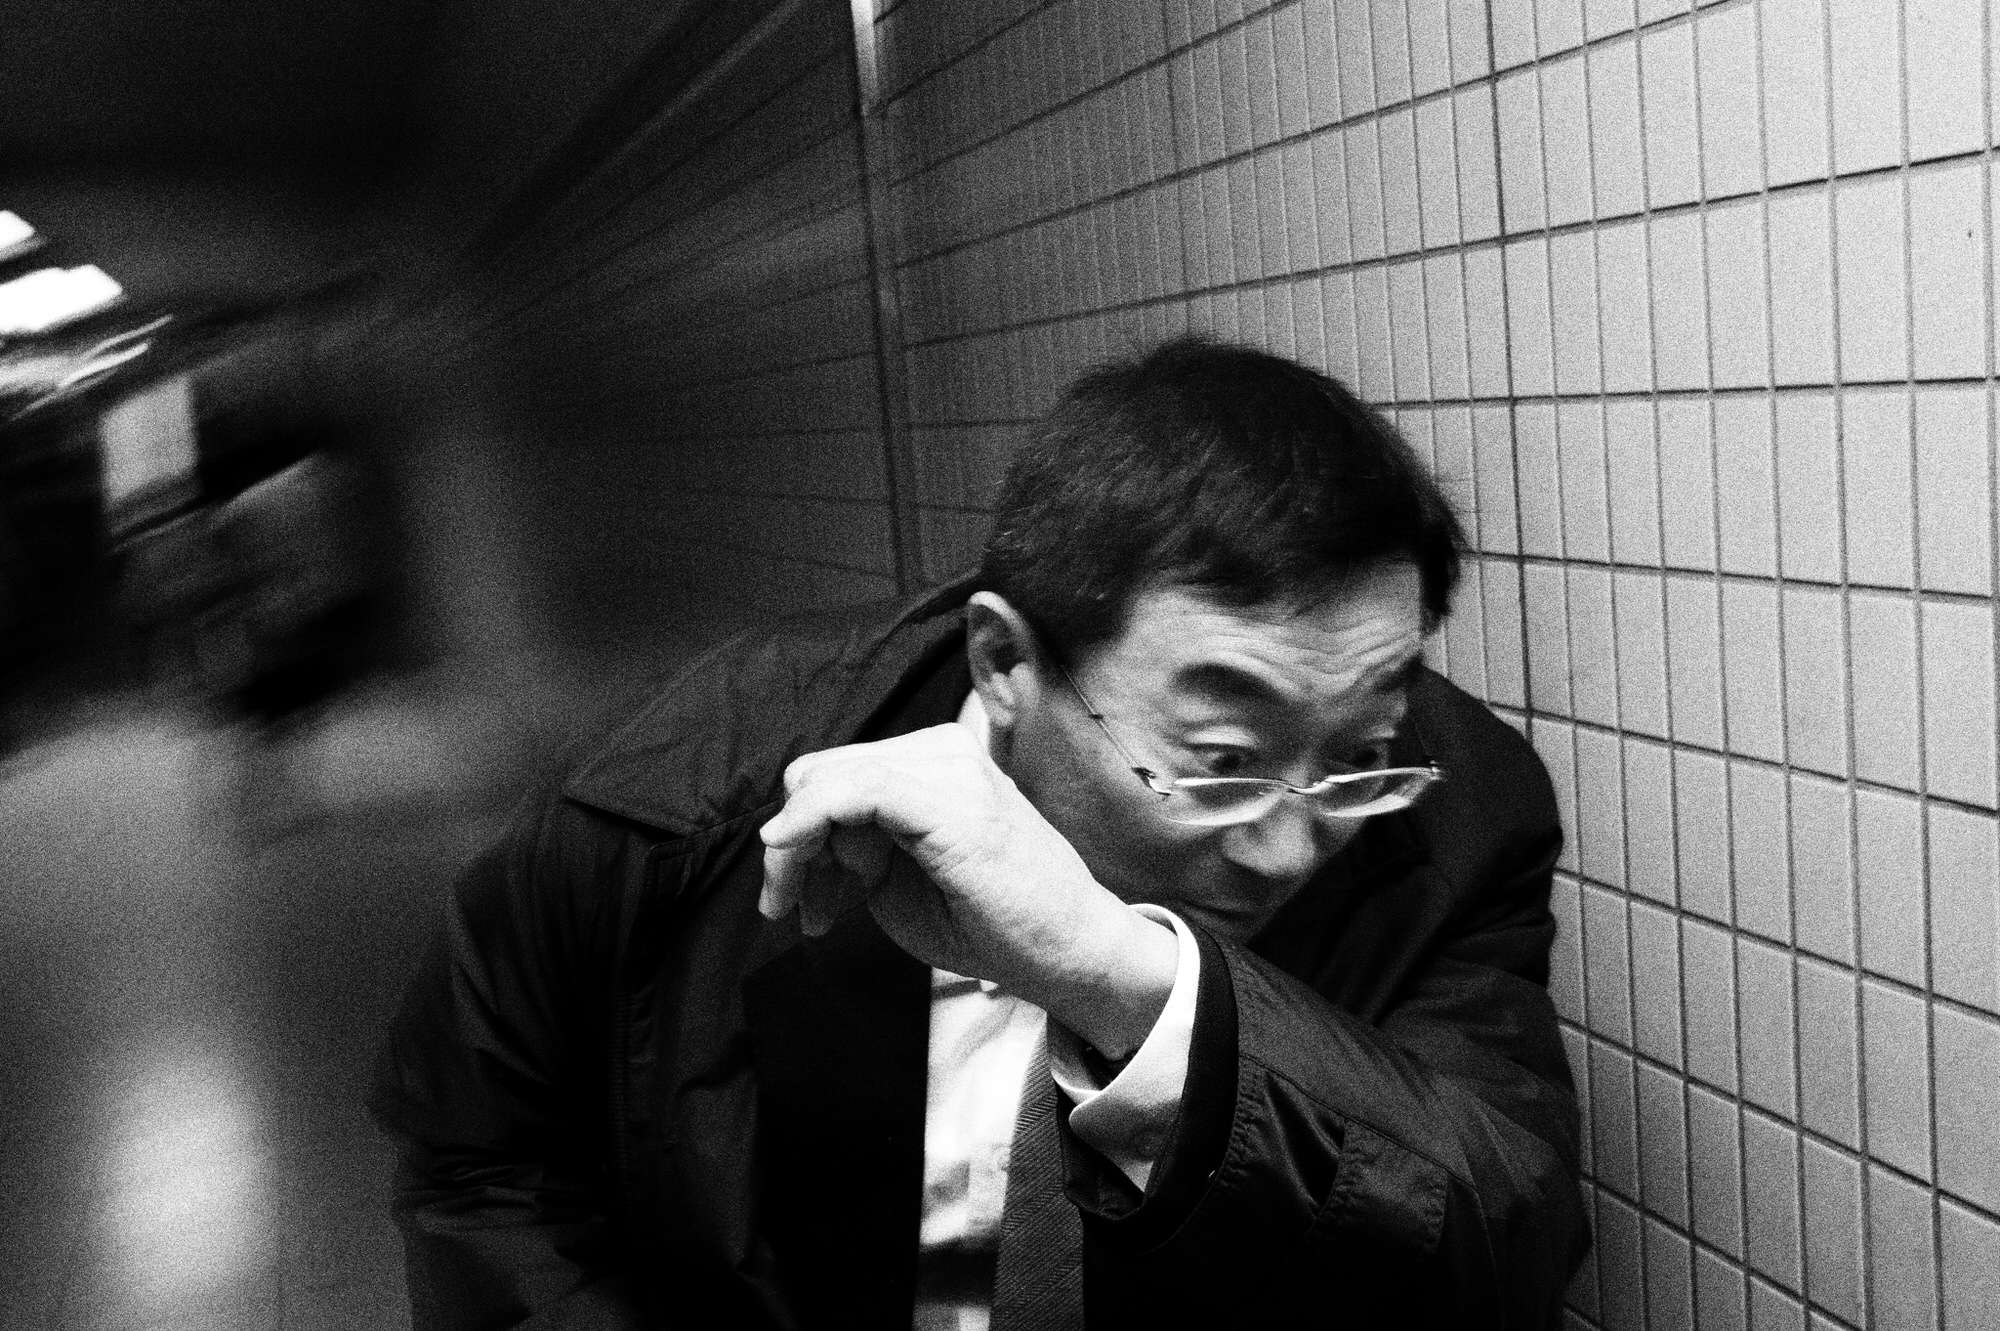 How to Overcome Hesitation in Street Photography